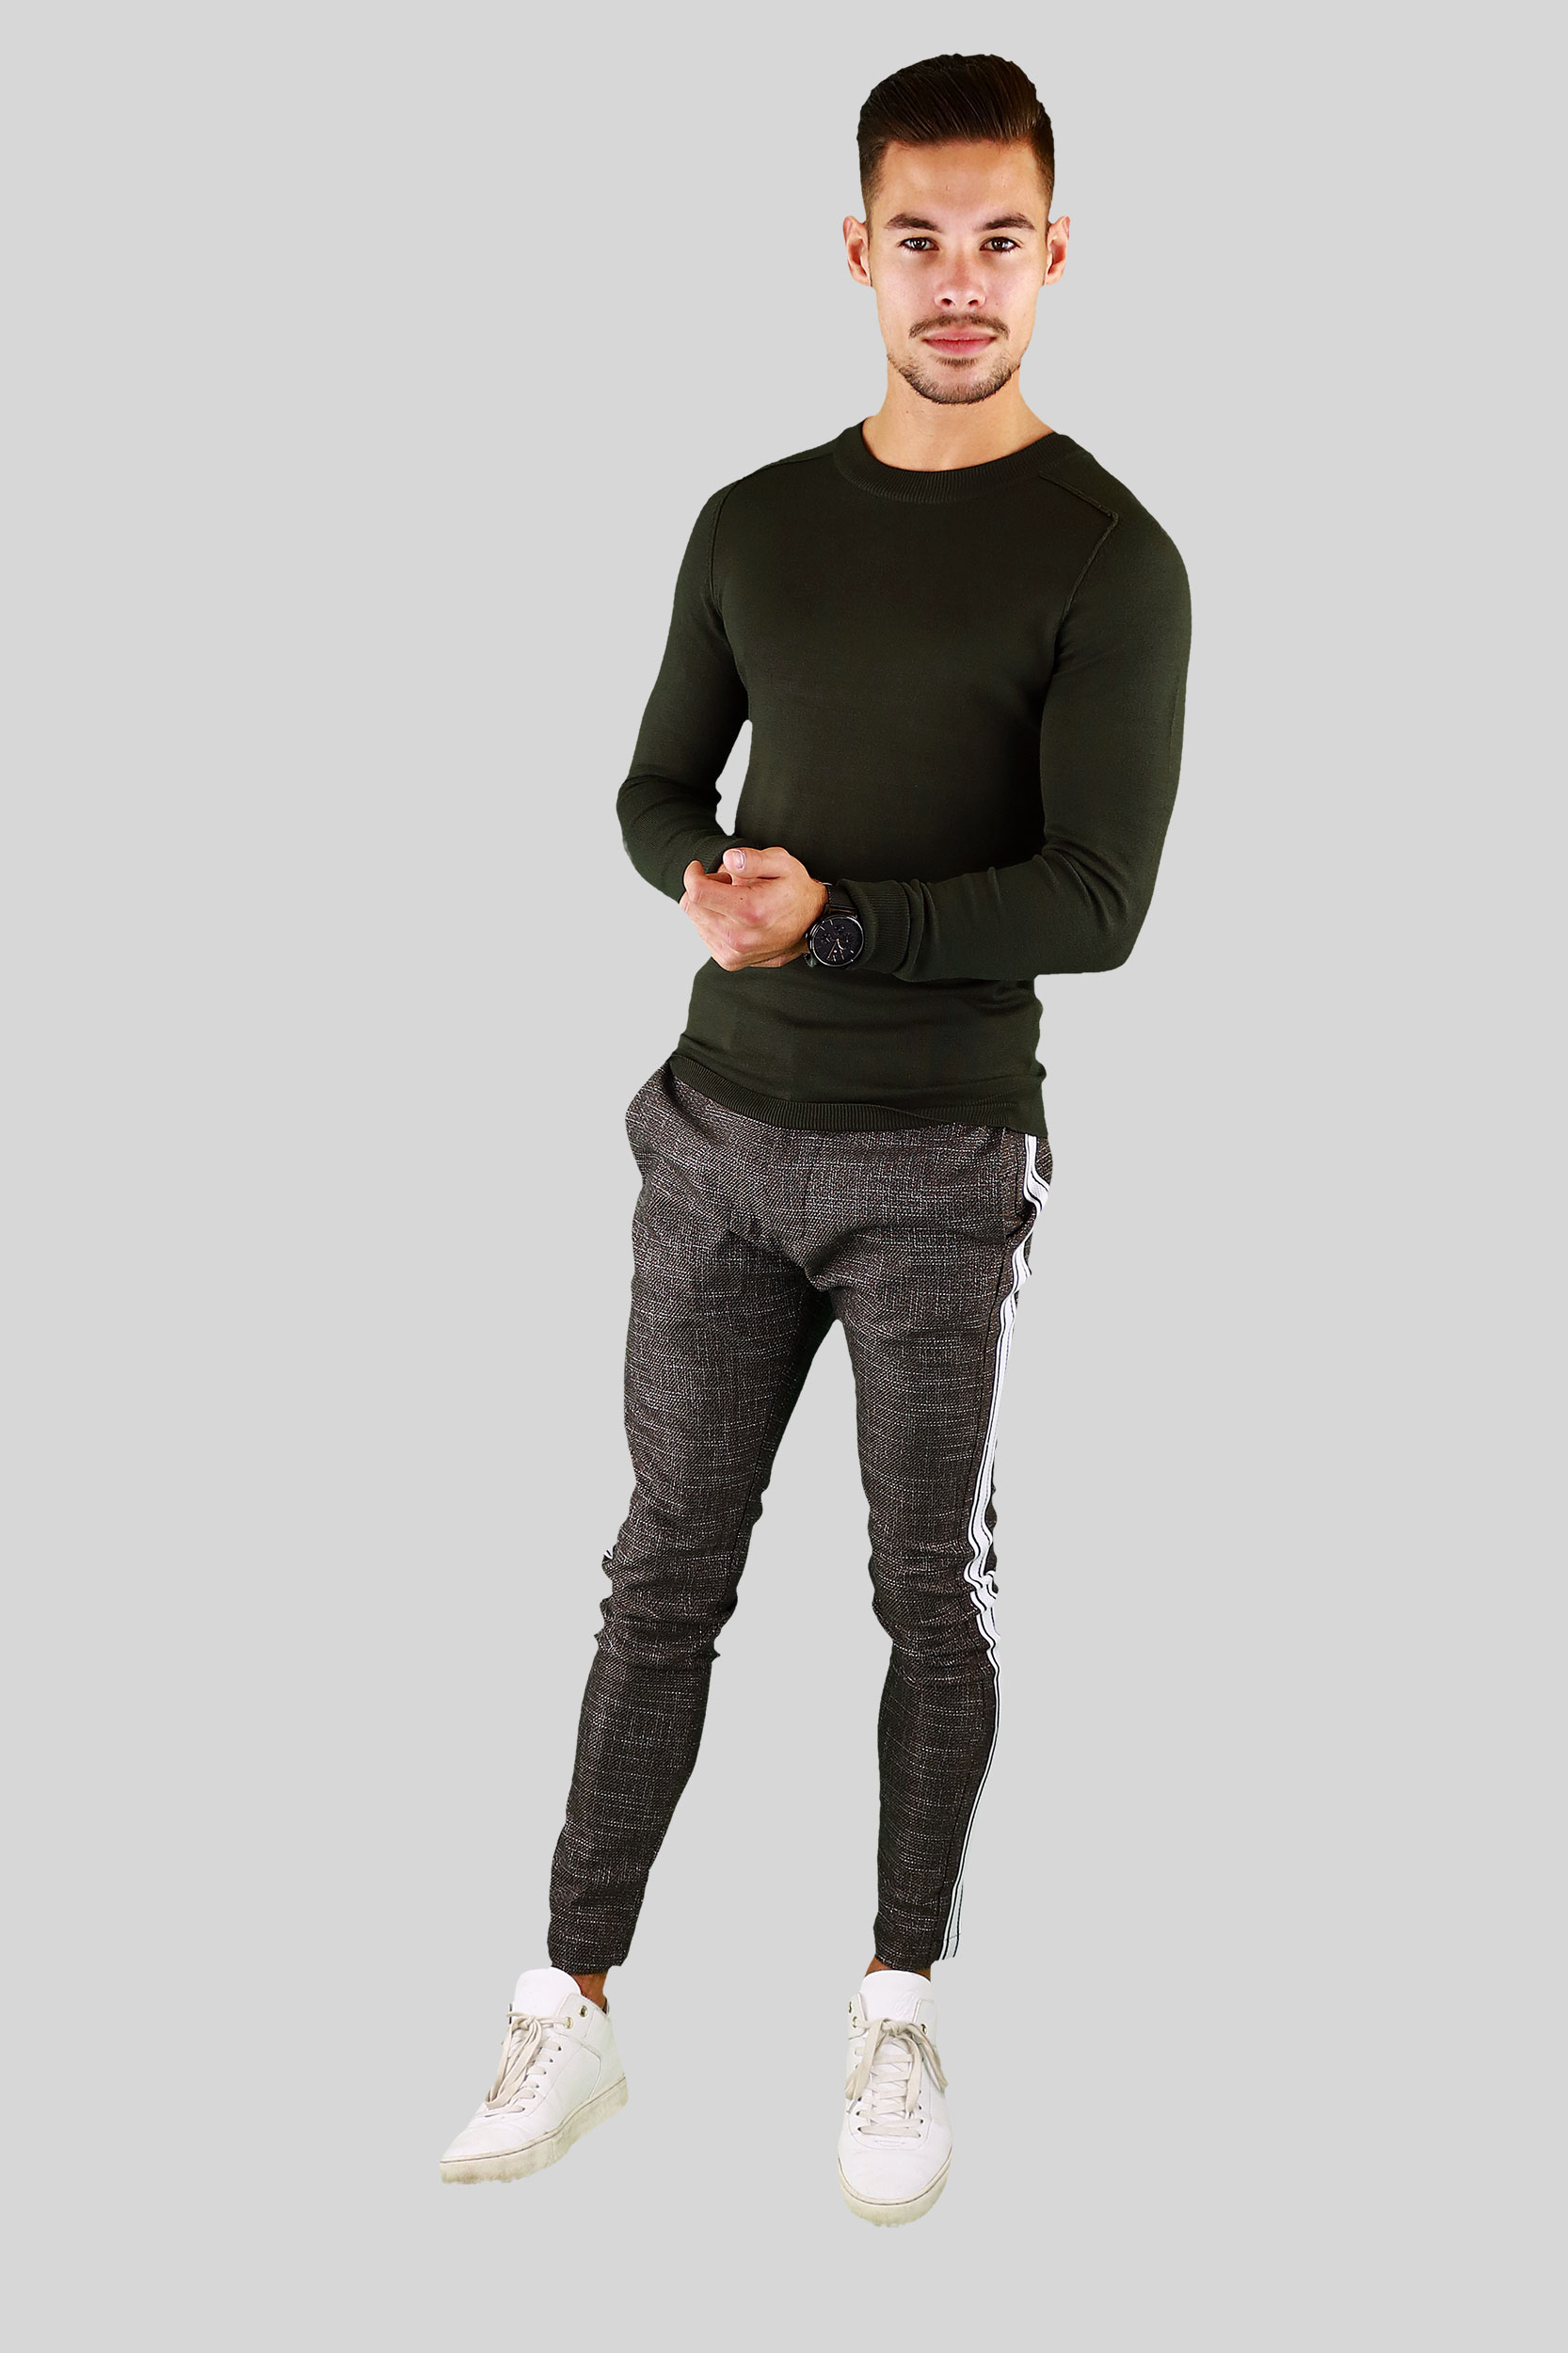 Whish Herenkleding. Tricot sweater Spandet army groen